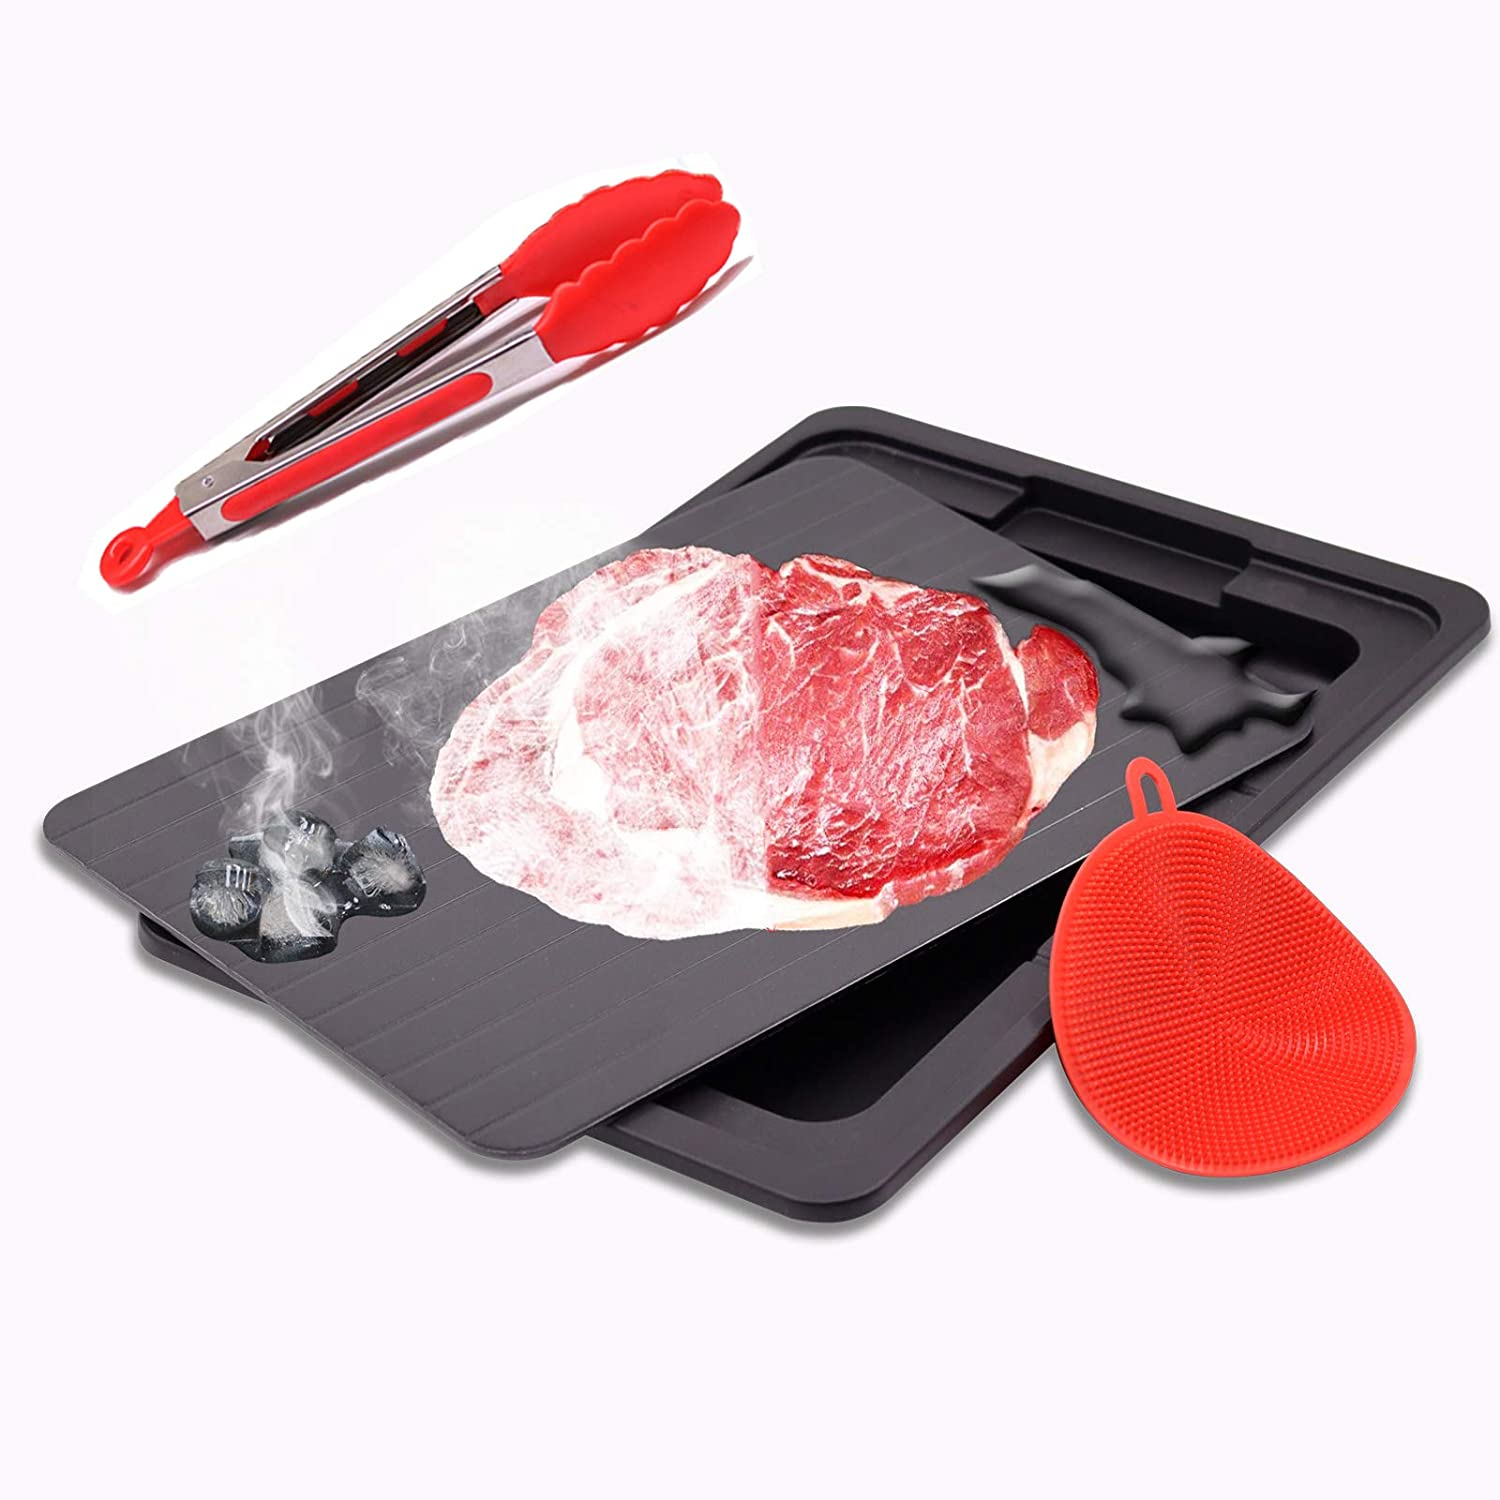 Rapid Defrosting Tray for Frozen Meat | Defrost Frozen Food | Large Size Defroster Plate Thaw | Kitchen Keen Defrosting Tray with Drip Tray | /Silicone Sponge/Tongs(thawing tray)